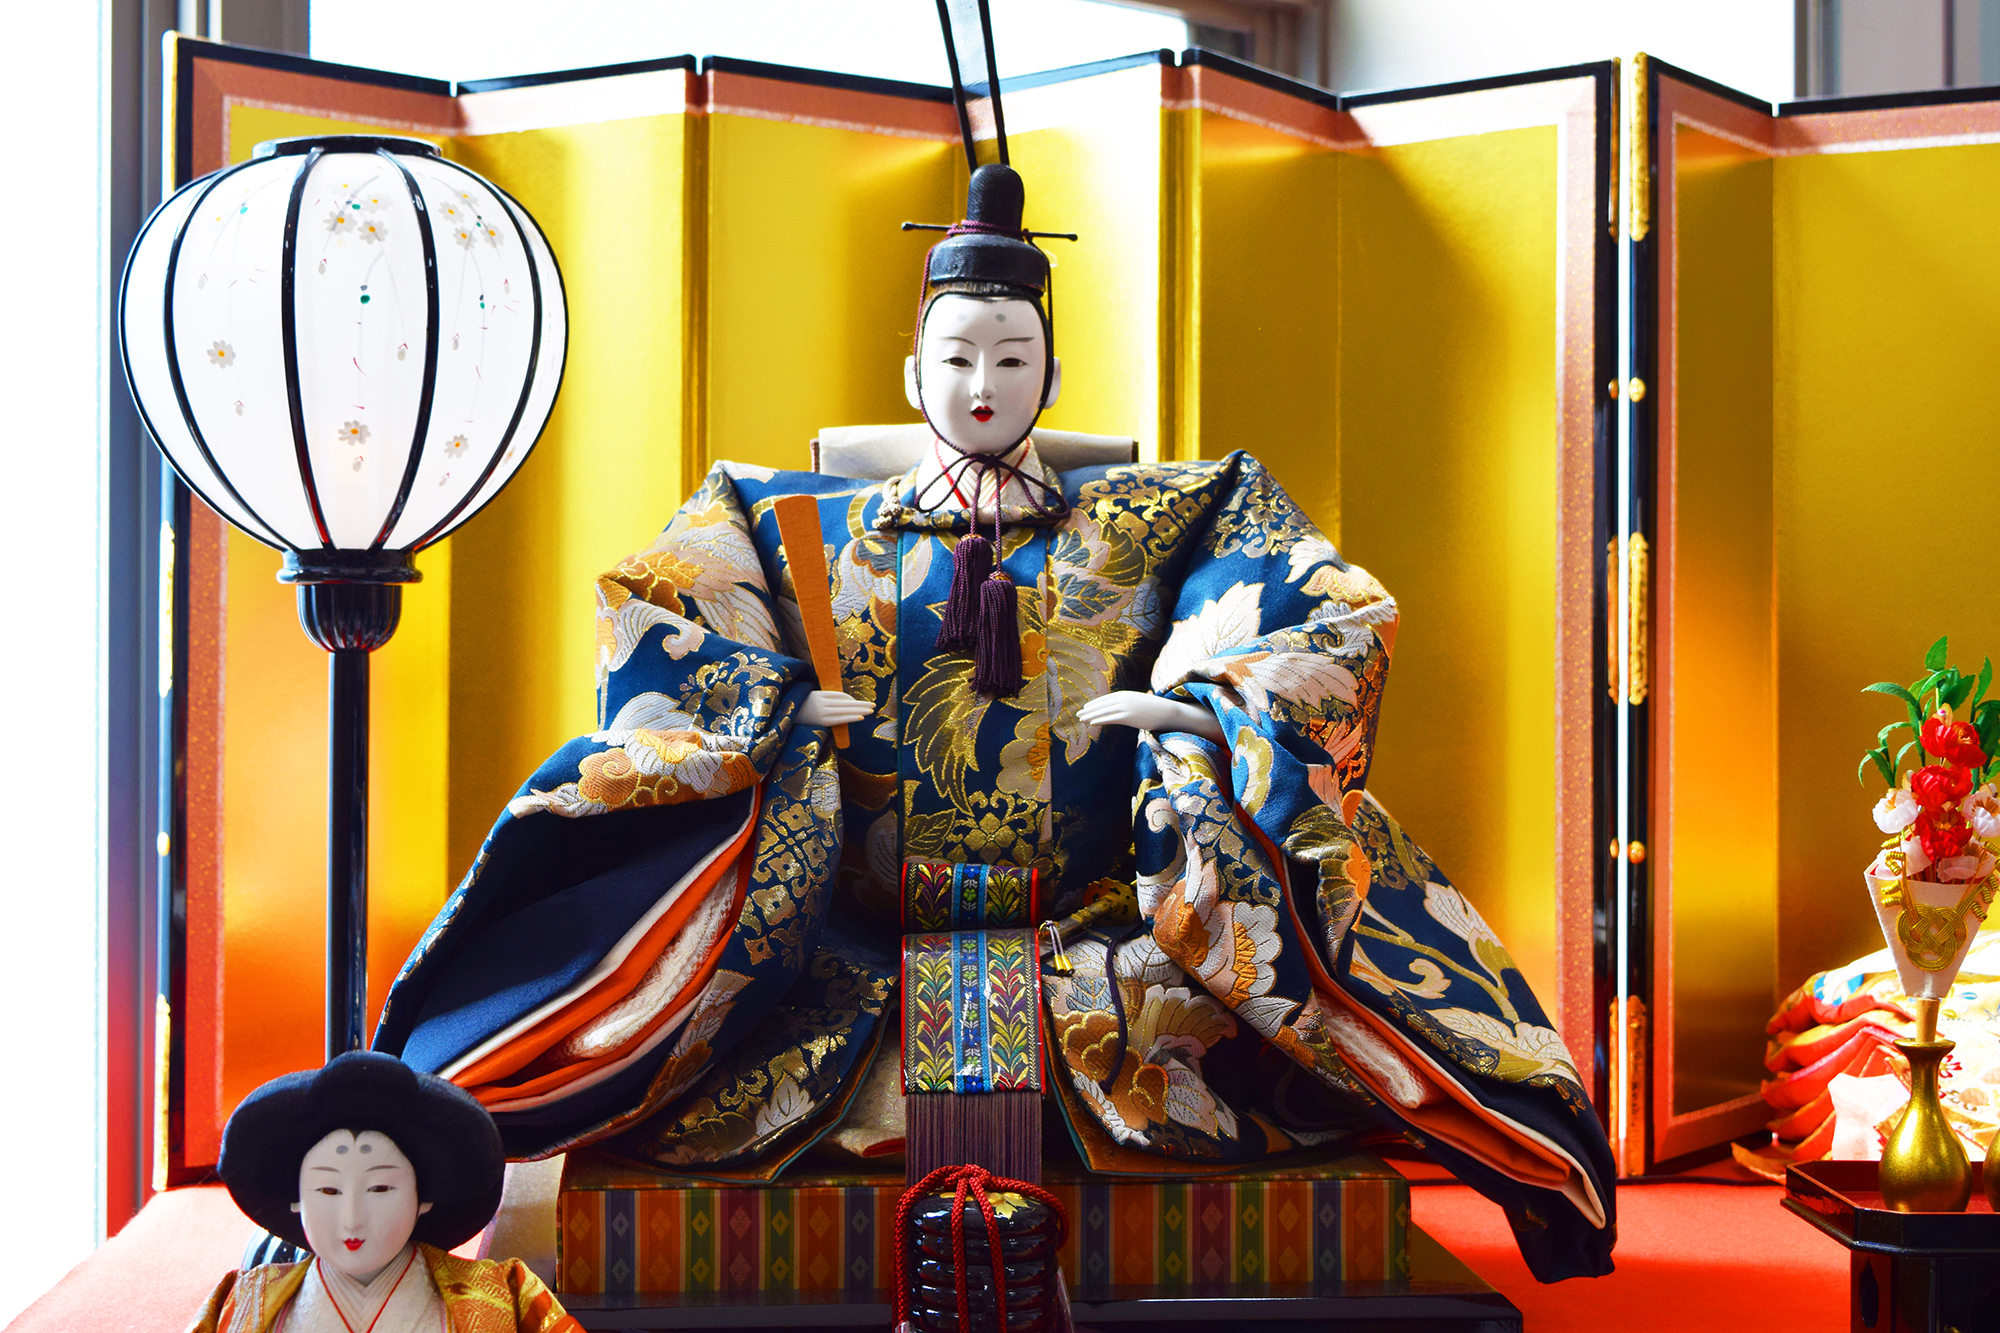 Traditional Japanese dolls.